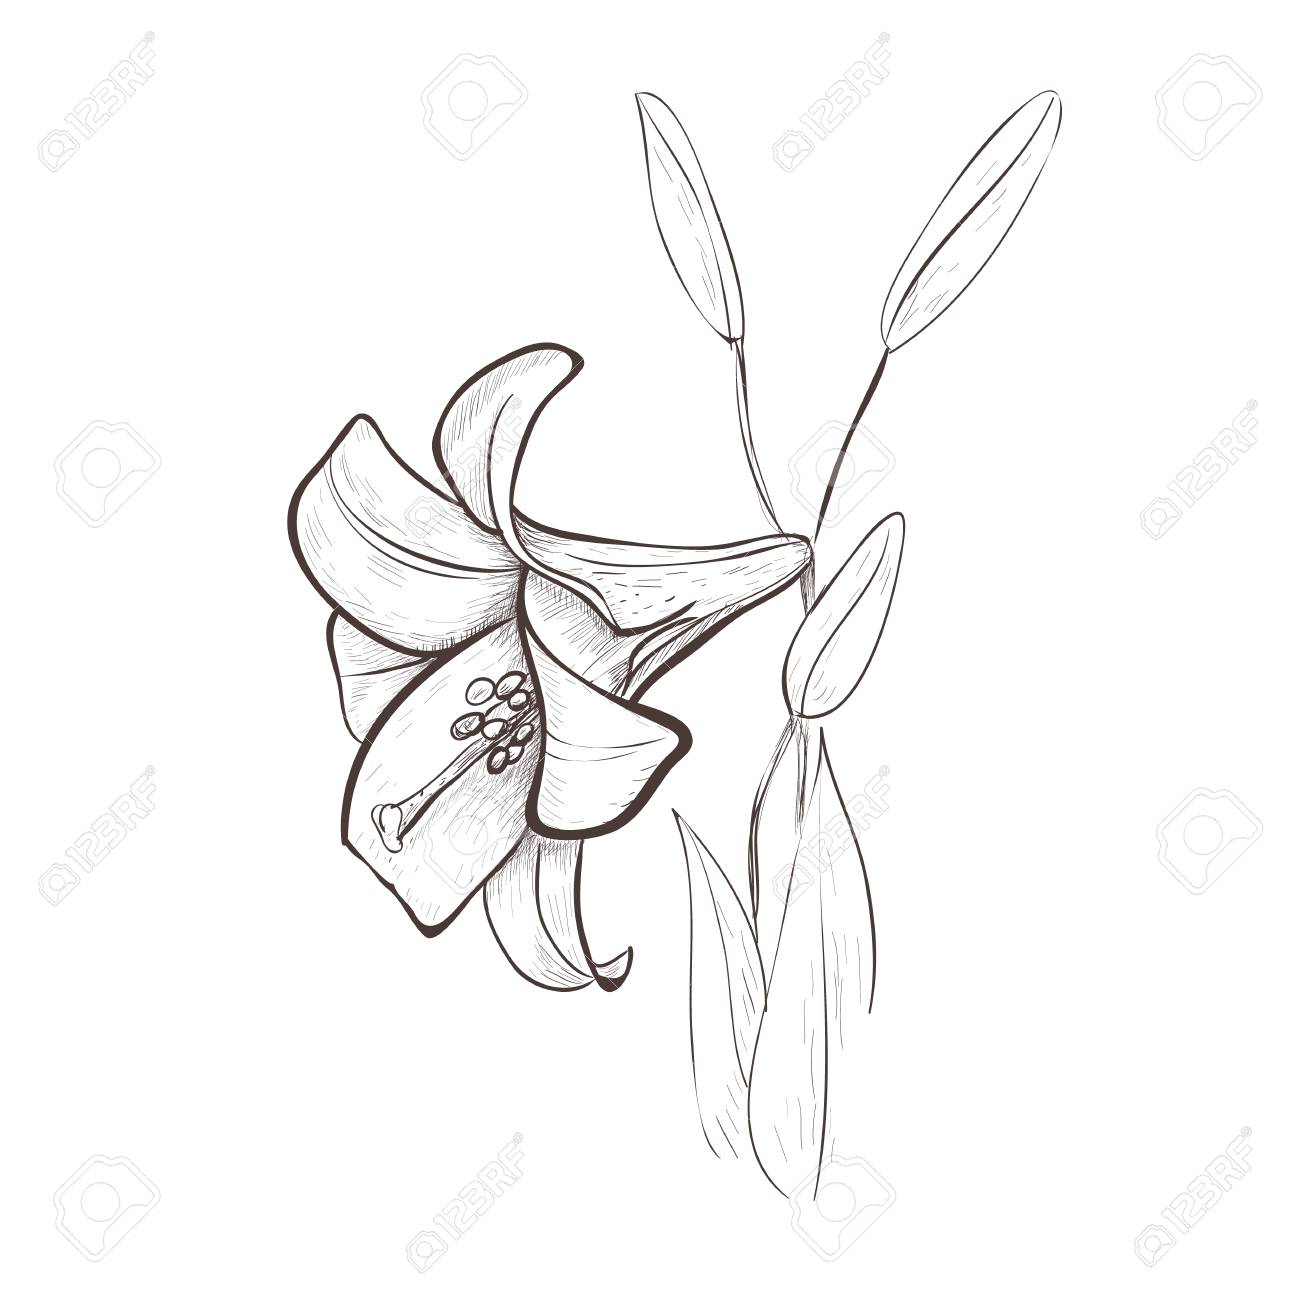 Lily Sketch Drawing Of A Flower Lily Flower Hand Drawing Vector